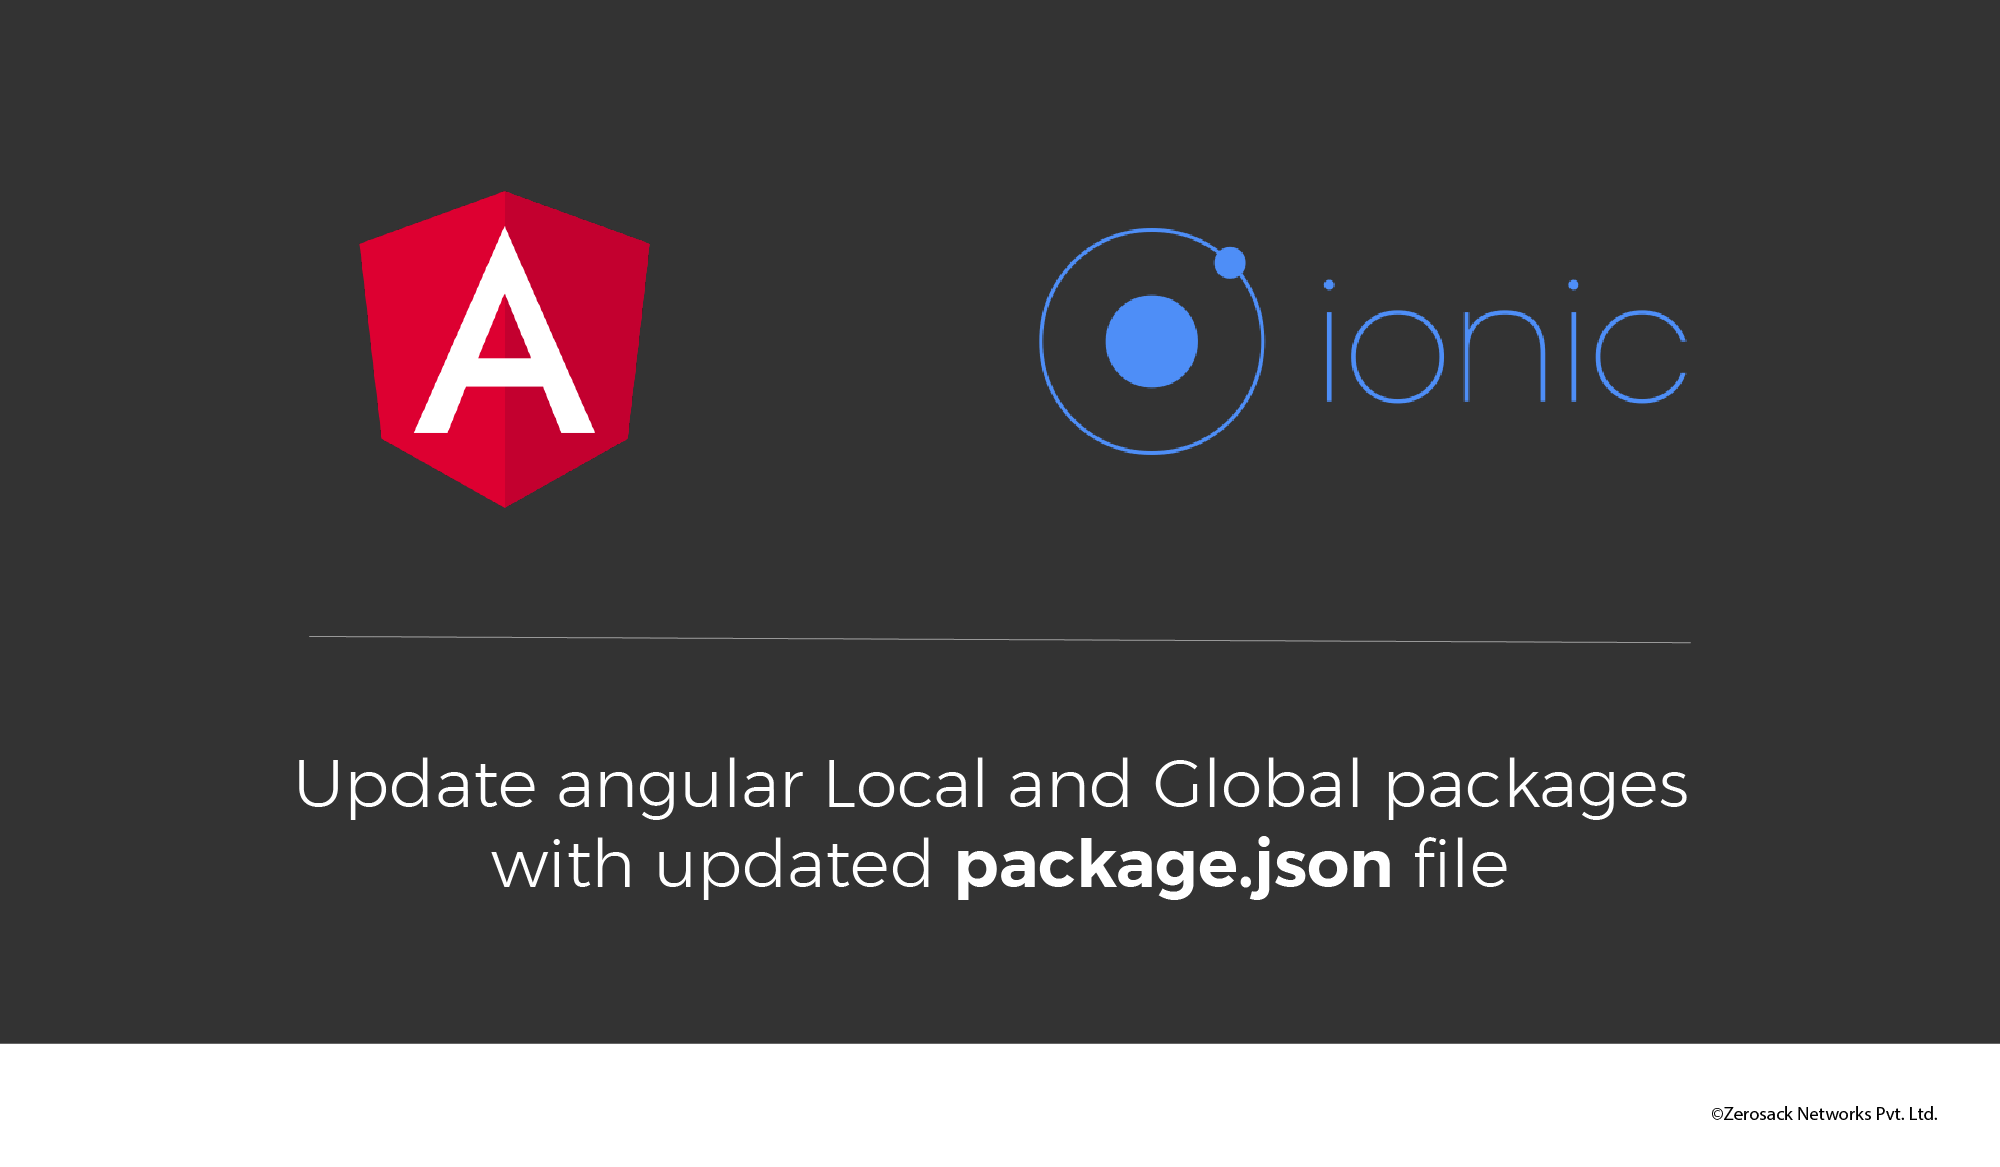 How-to-update-angular-local-and-global-packages-with-updated-package.json-file